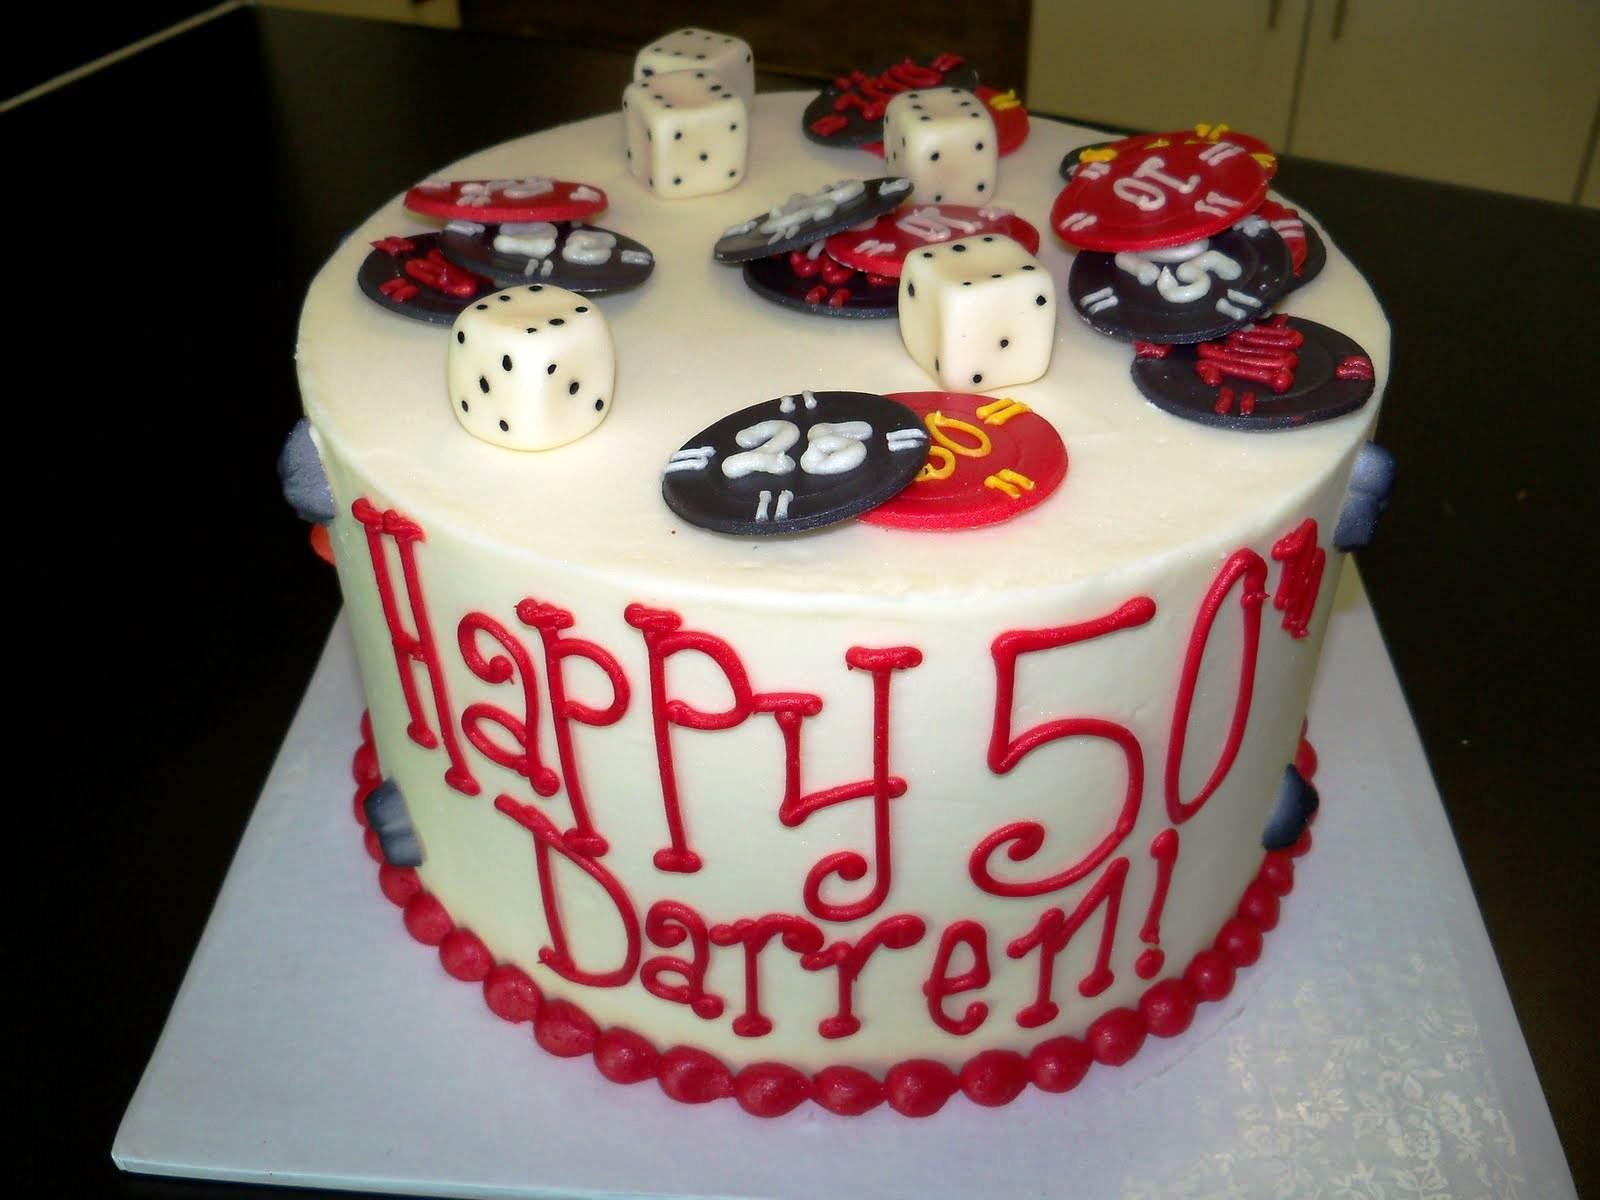 50Th Birthday Cakes For Men Pictures Of 50th Birthday Cakes For Men Protoblogr Design 50th